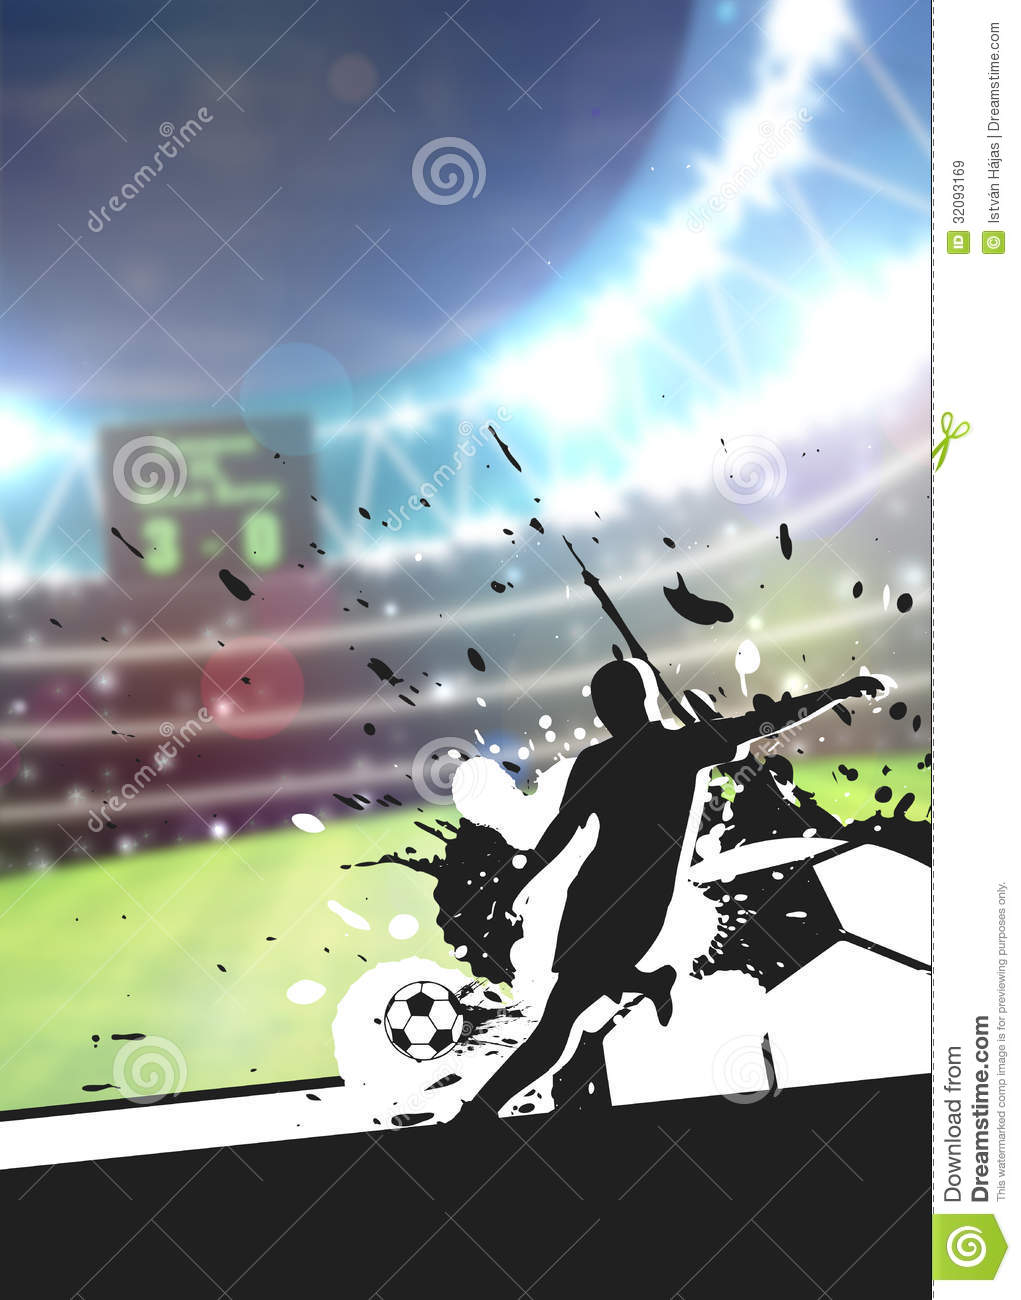 soccer sport background stock image  image of arena